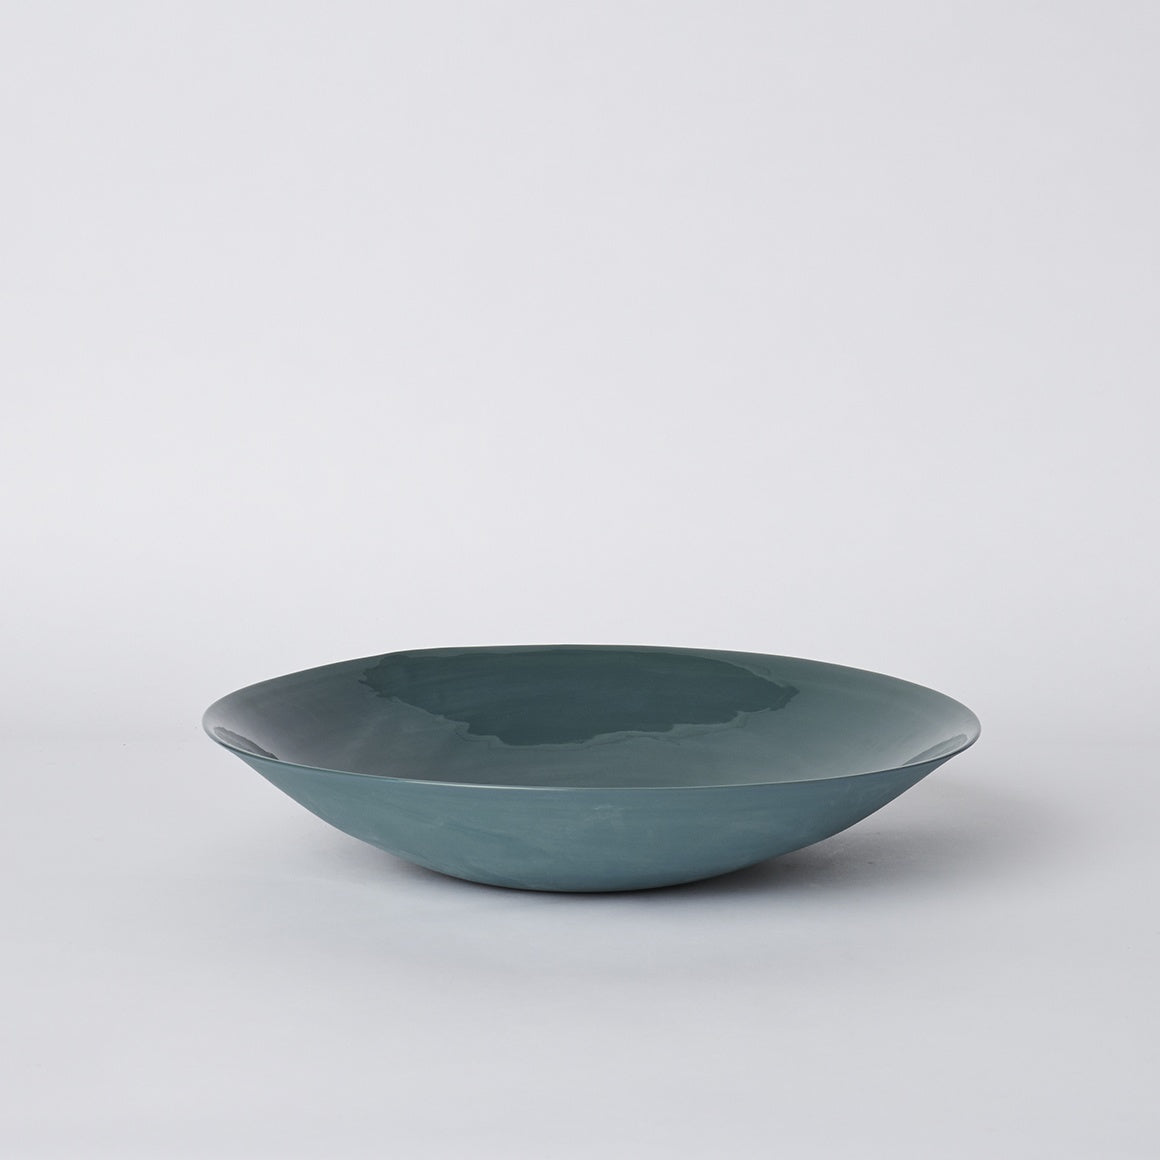 MUD AUSTRALIA-NEST BOWL - Eclectic Cool  - 7